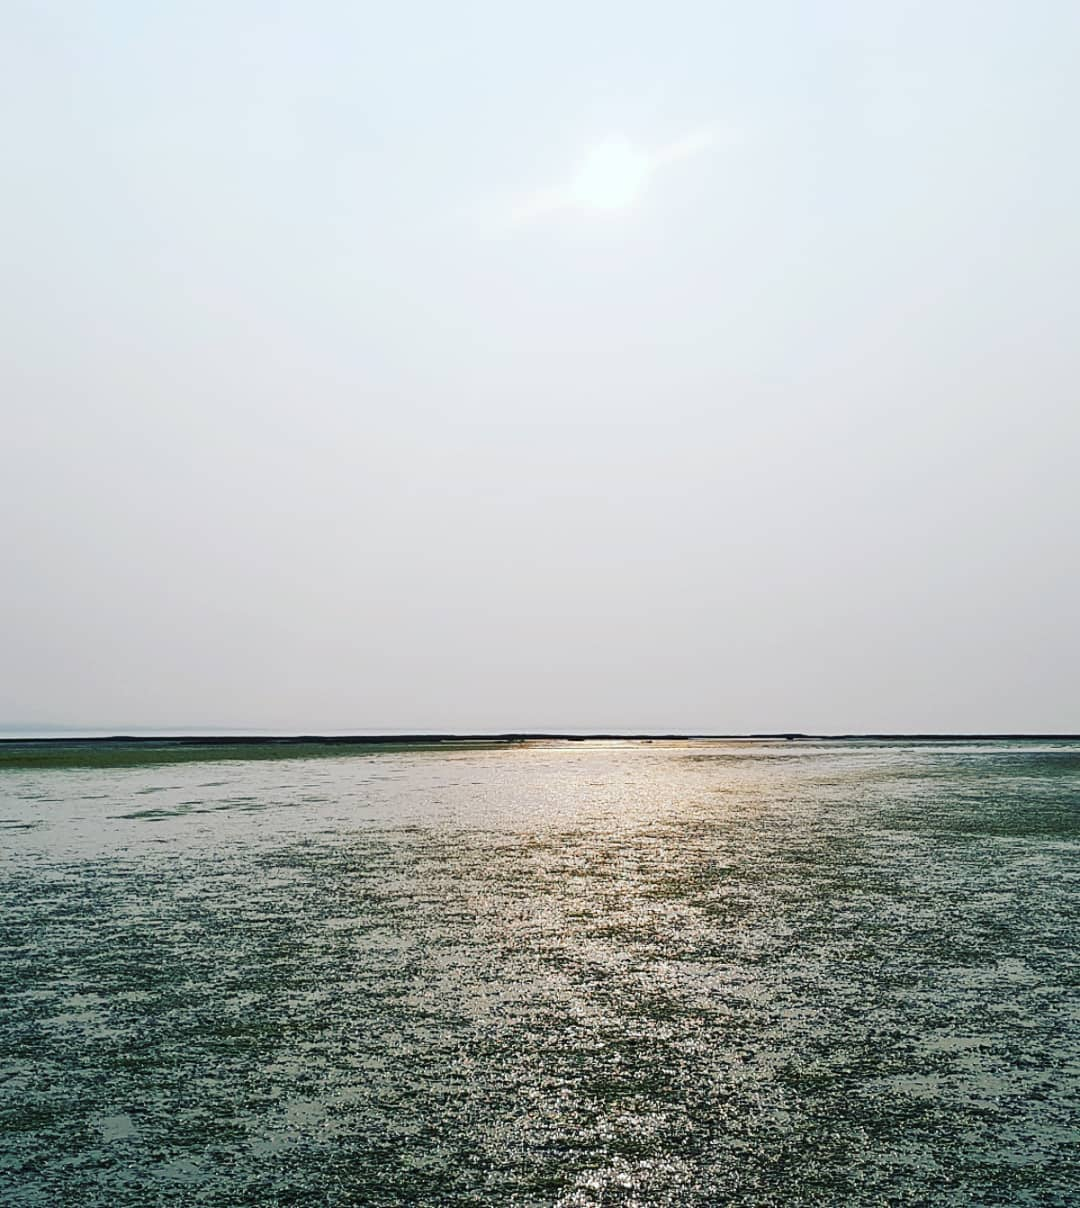 This is an image of a marshy landscape with green grass poking through the shallow water. This sun is setting, and it is a grey day.